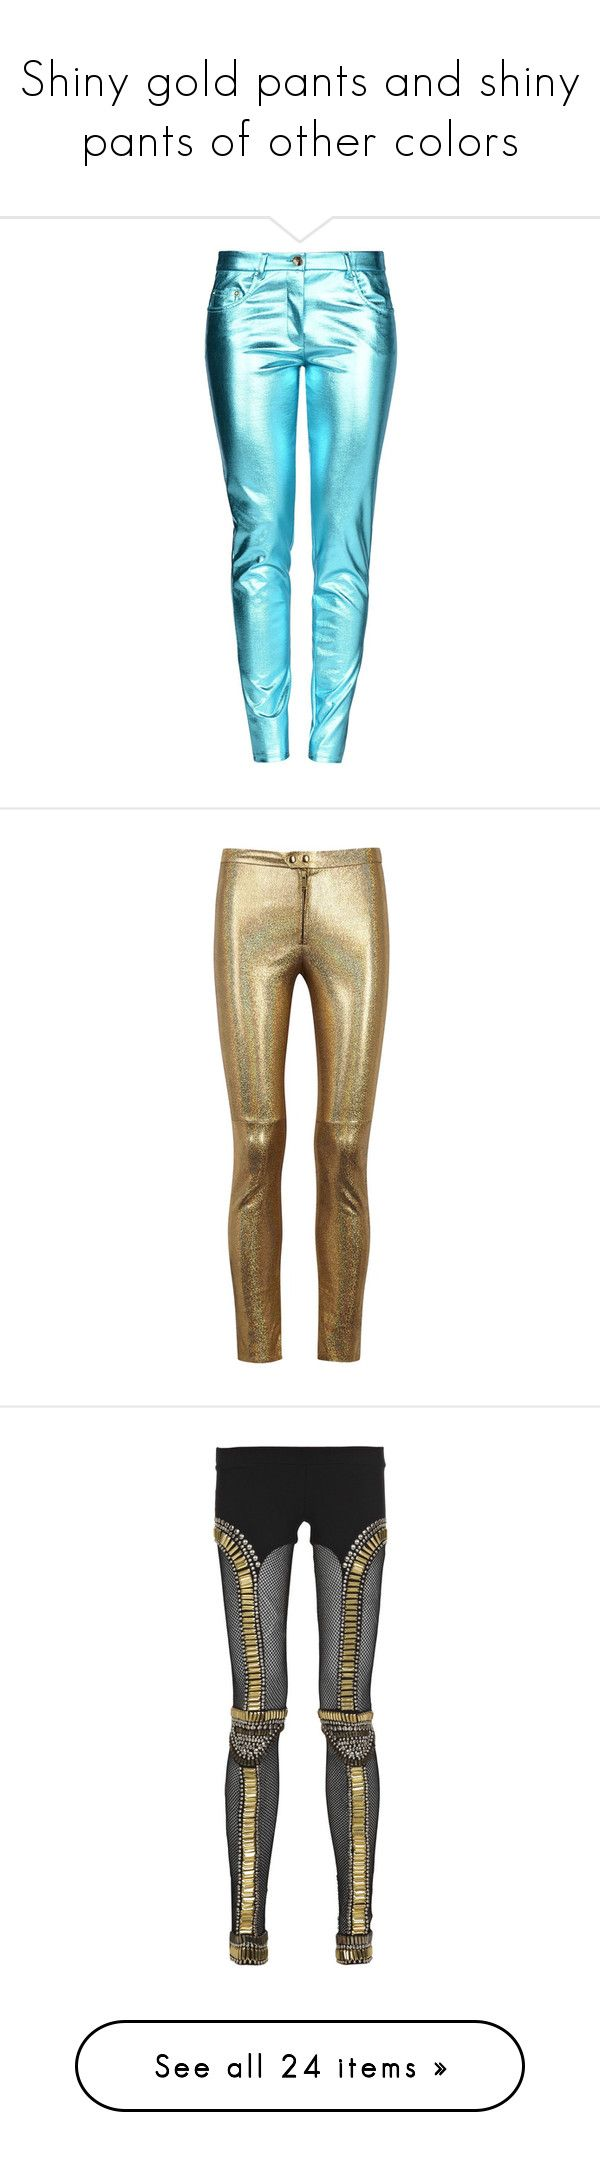 """Shiny gold pants and shiny pants of other colors"" by badstan ❤ liked on Polyvore featuring pants, bottoms, trousers, moschino, pantalones, turquoise, 5 pocket pants, button pants, jersey pants and zip pants"